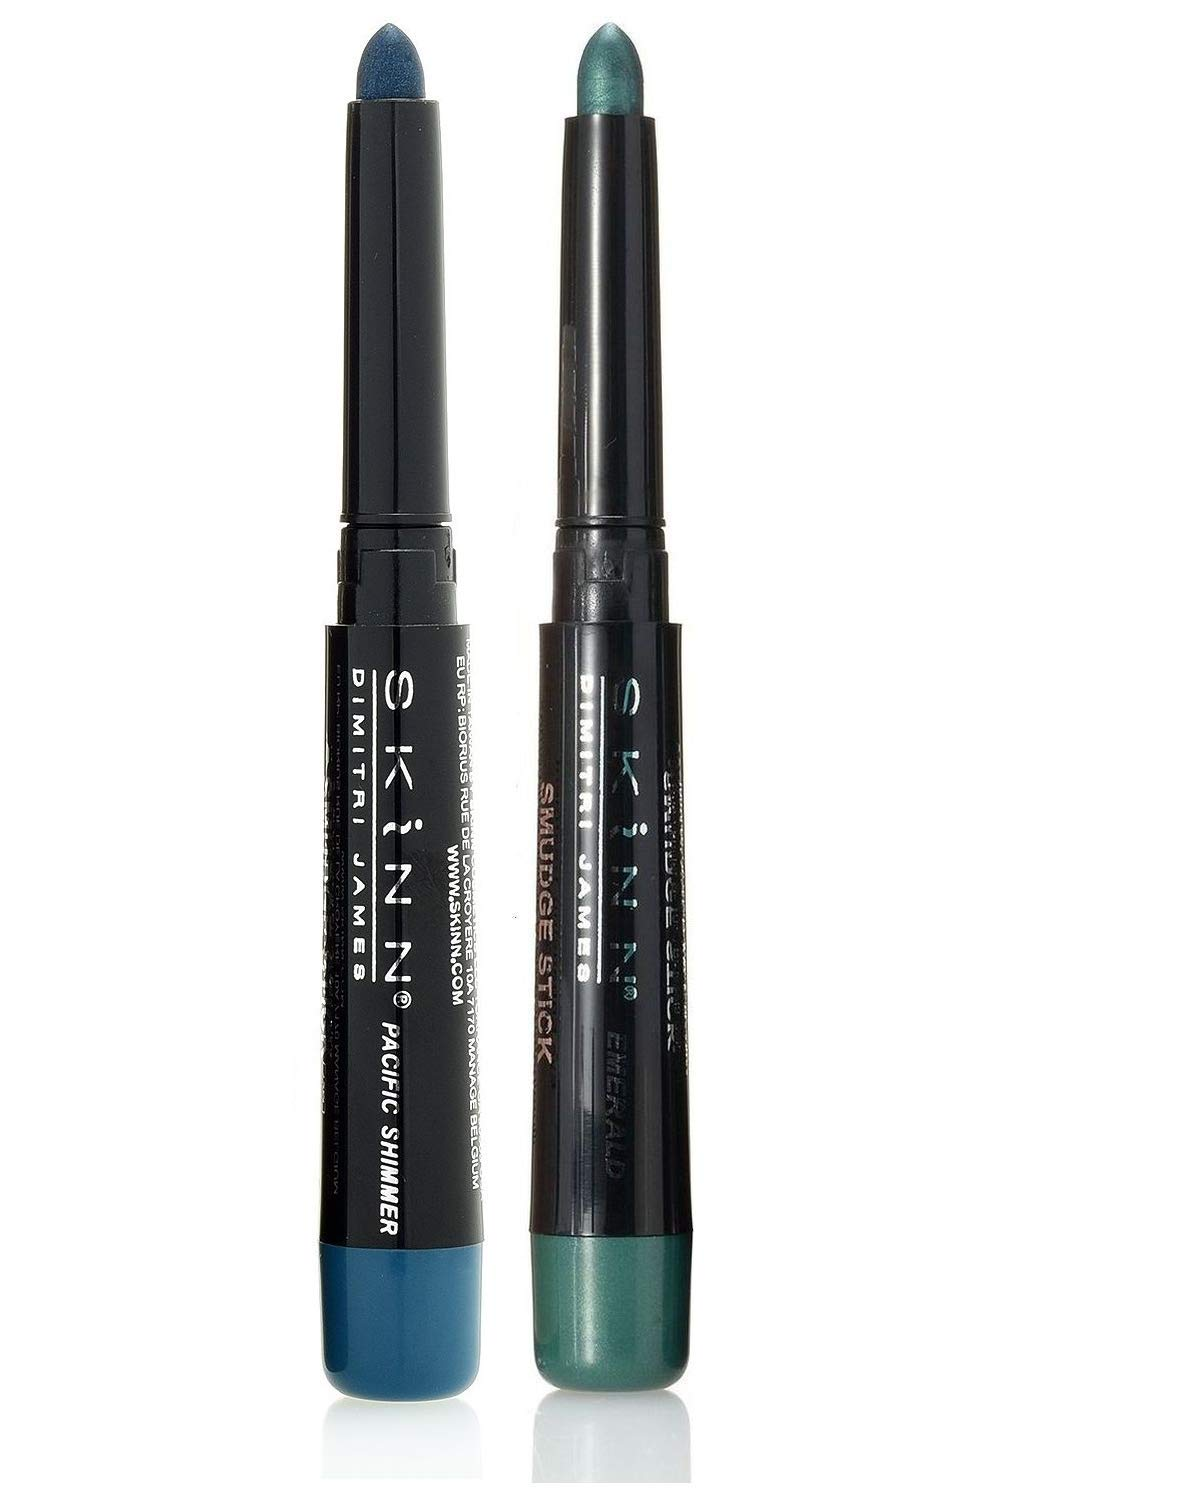 Skinn Cosmetics Smudge Stick for Eyes - Set of 2 Eye Pencils - Pacific Shimmer & Emerald by Skinn Cosmetics (Image #1)